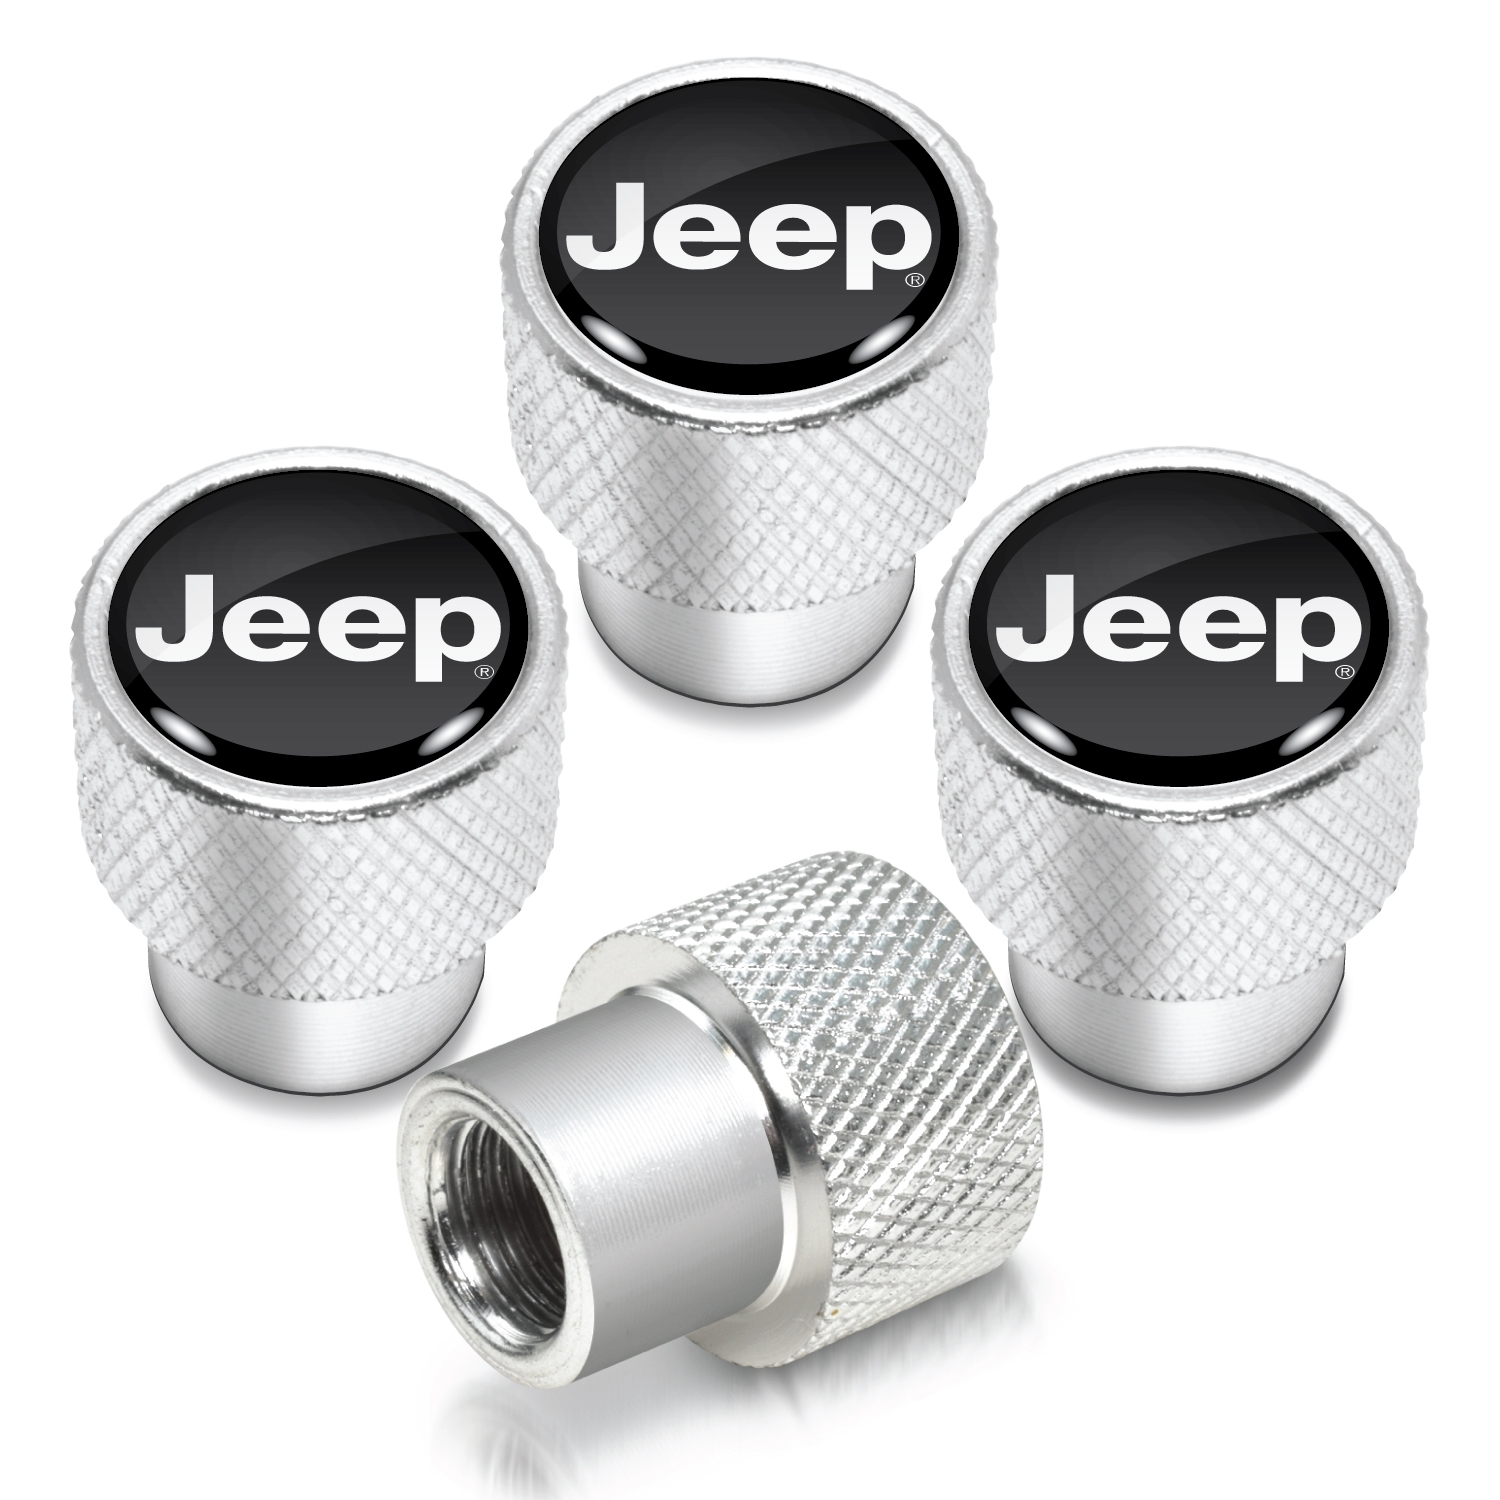 Jeep in Black on Shining Silver Aluminum Tire Valve Stem Caps